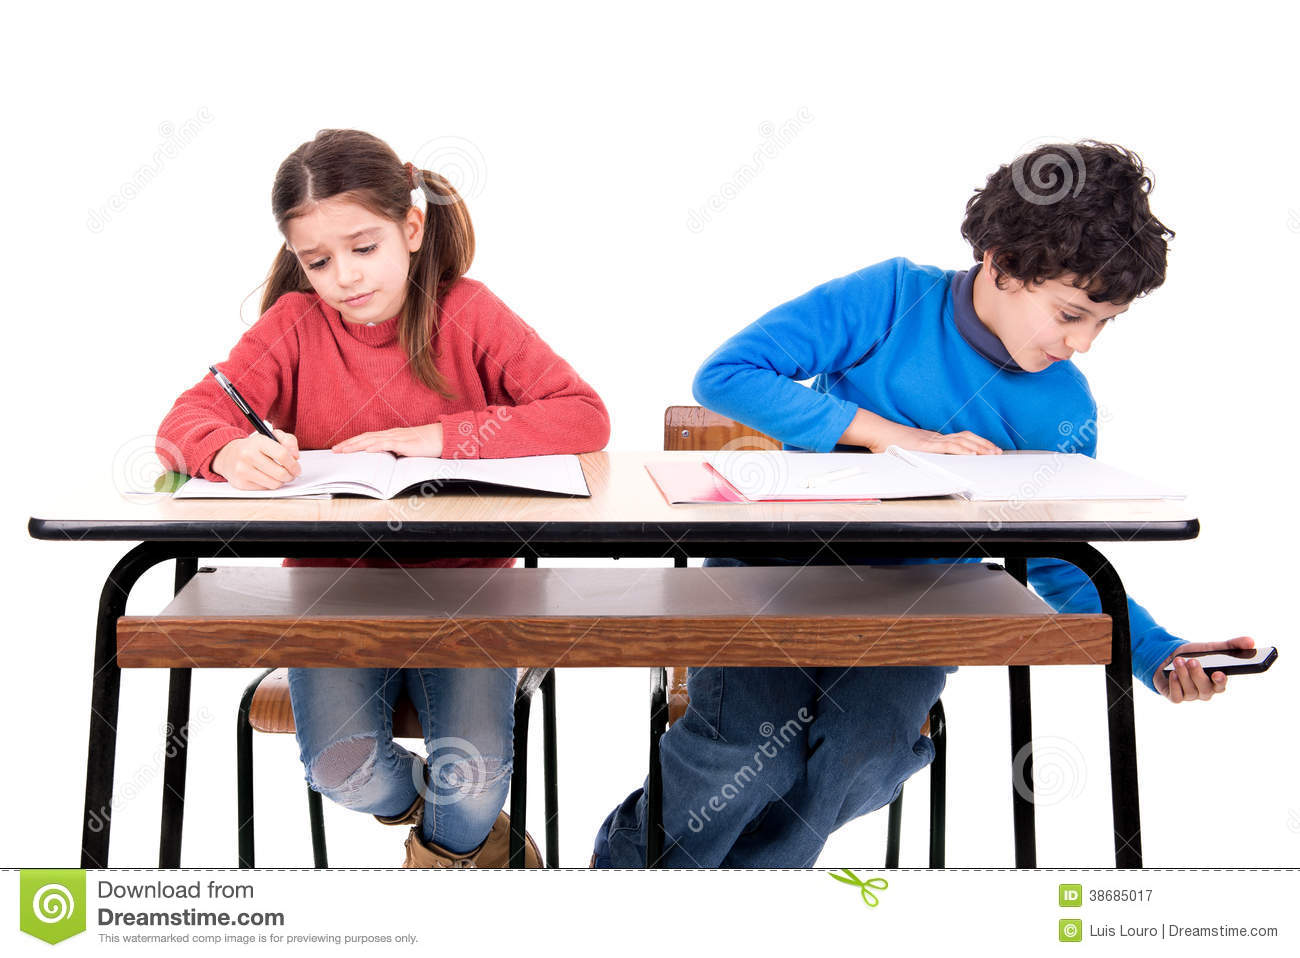 Boy Cheating With Cellphone In The Classroom Royalty Free Stock Photography